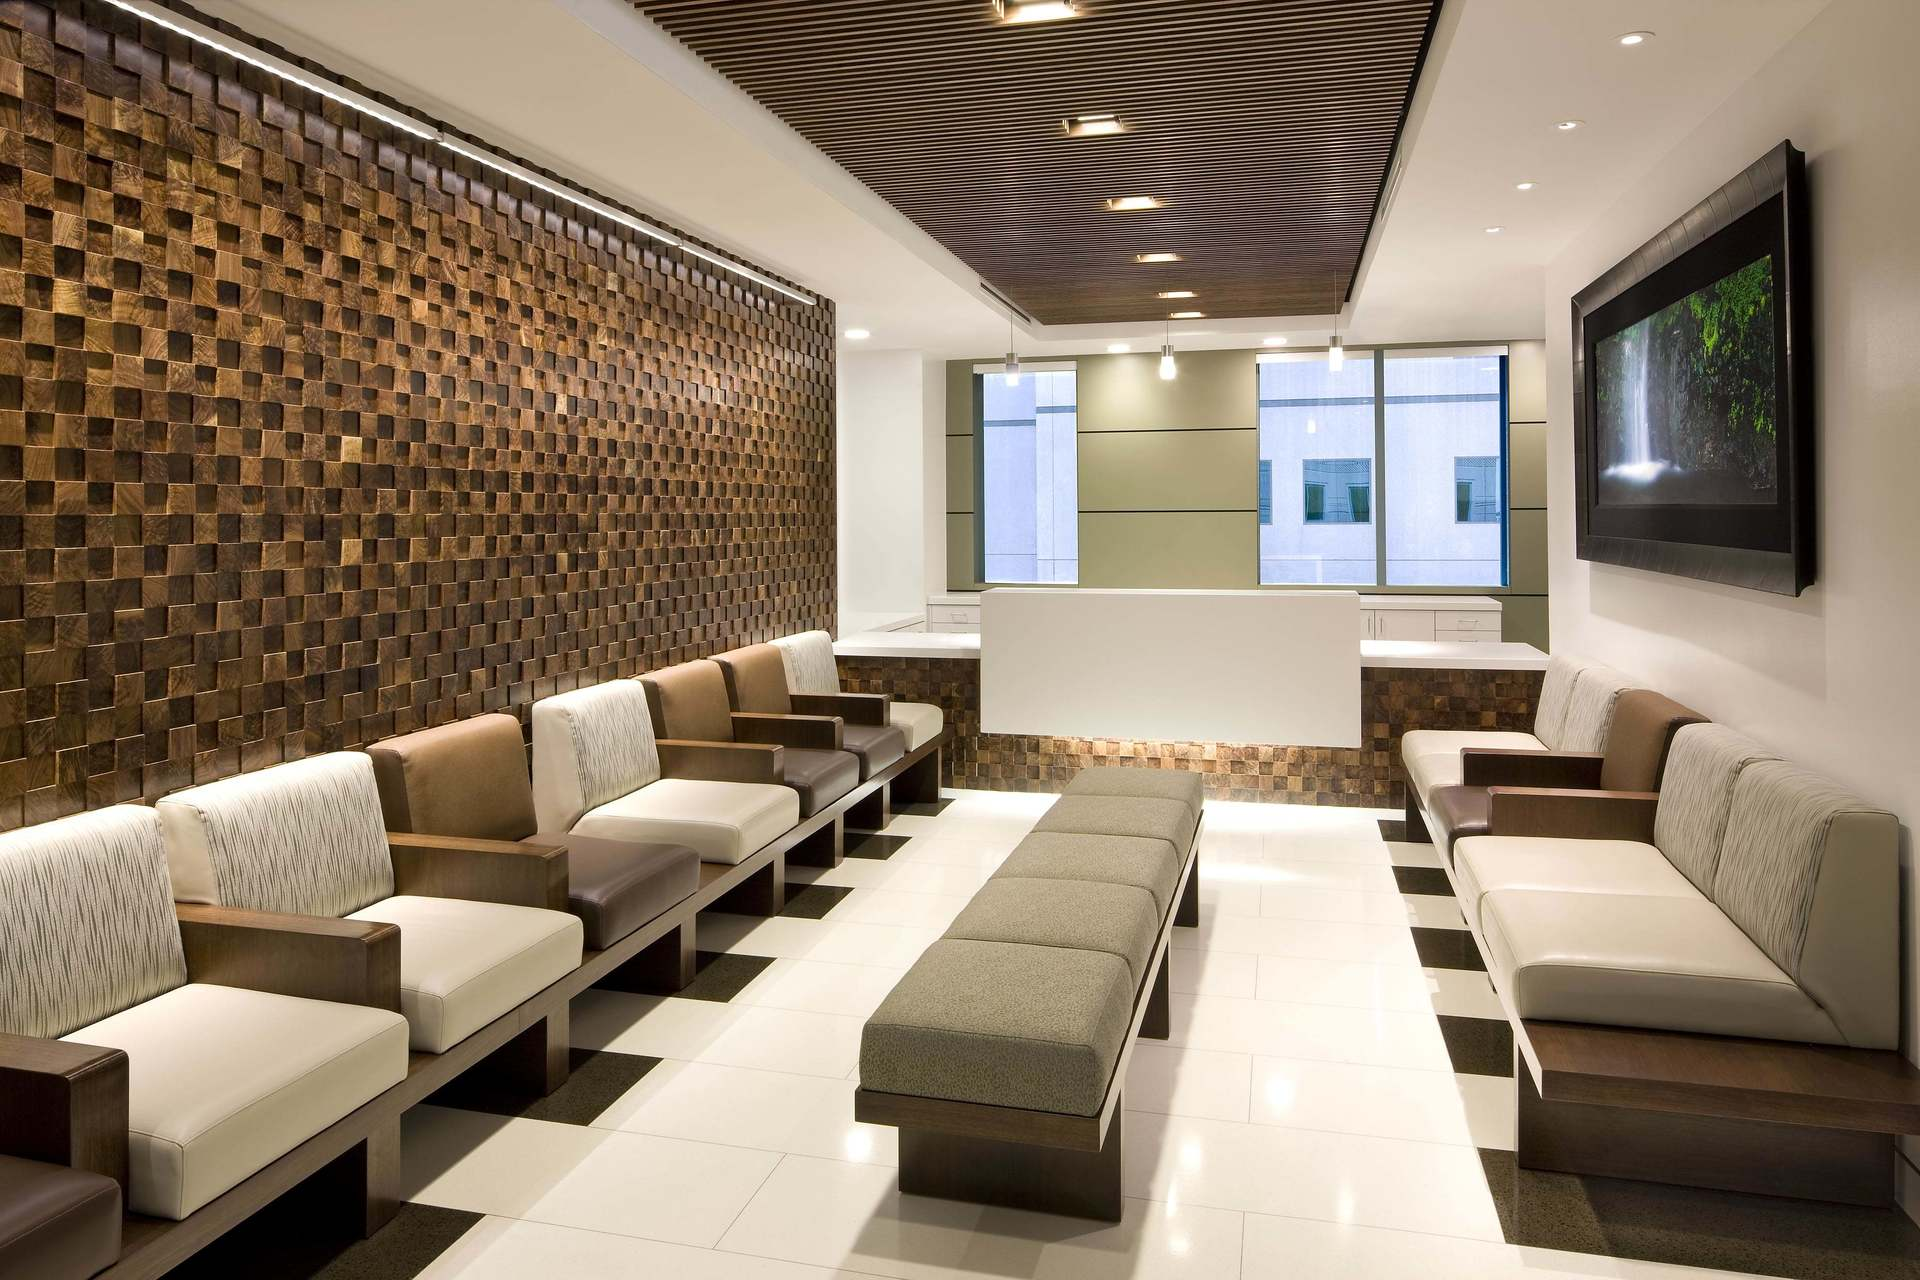 Asi Architectural Systems Ucla Medical Plaza Fusion Wood Panels Waiting Room Design